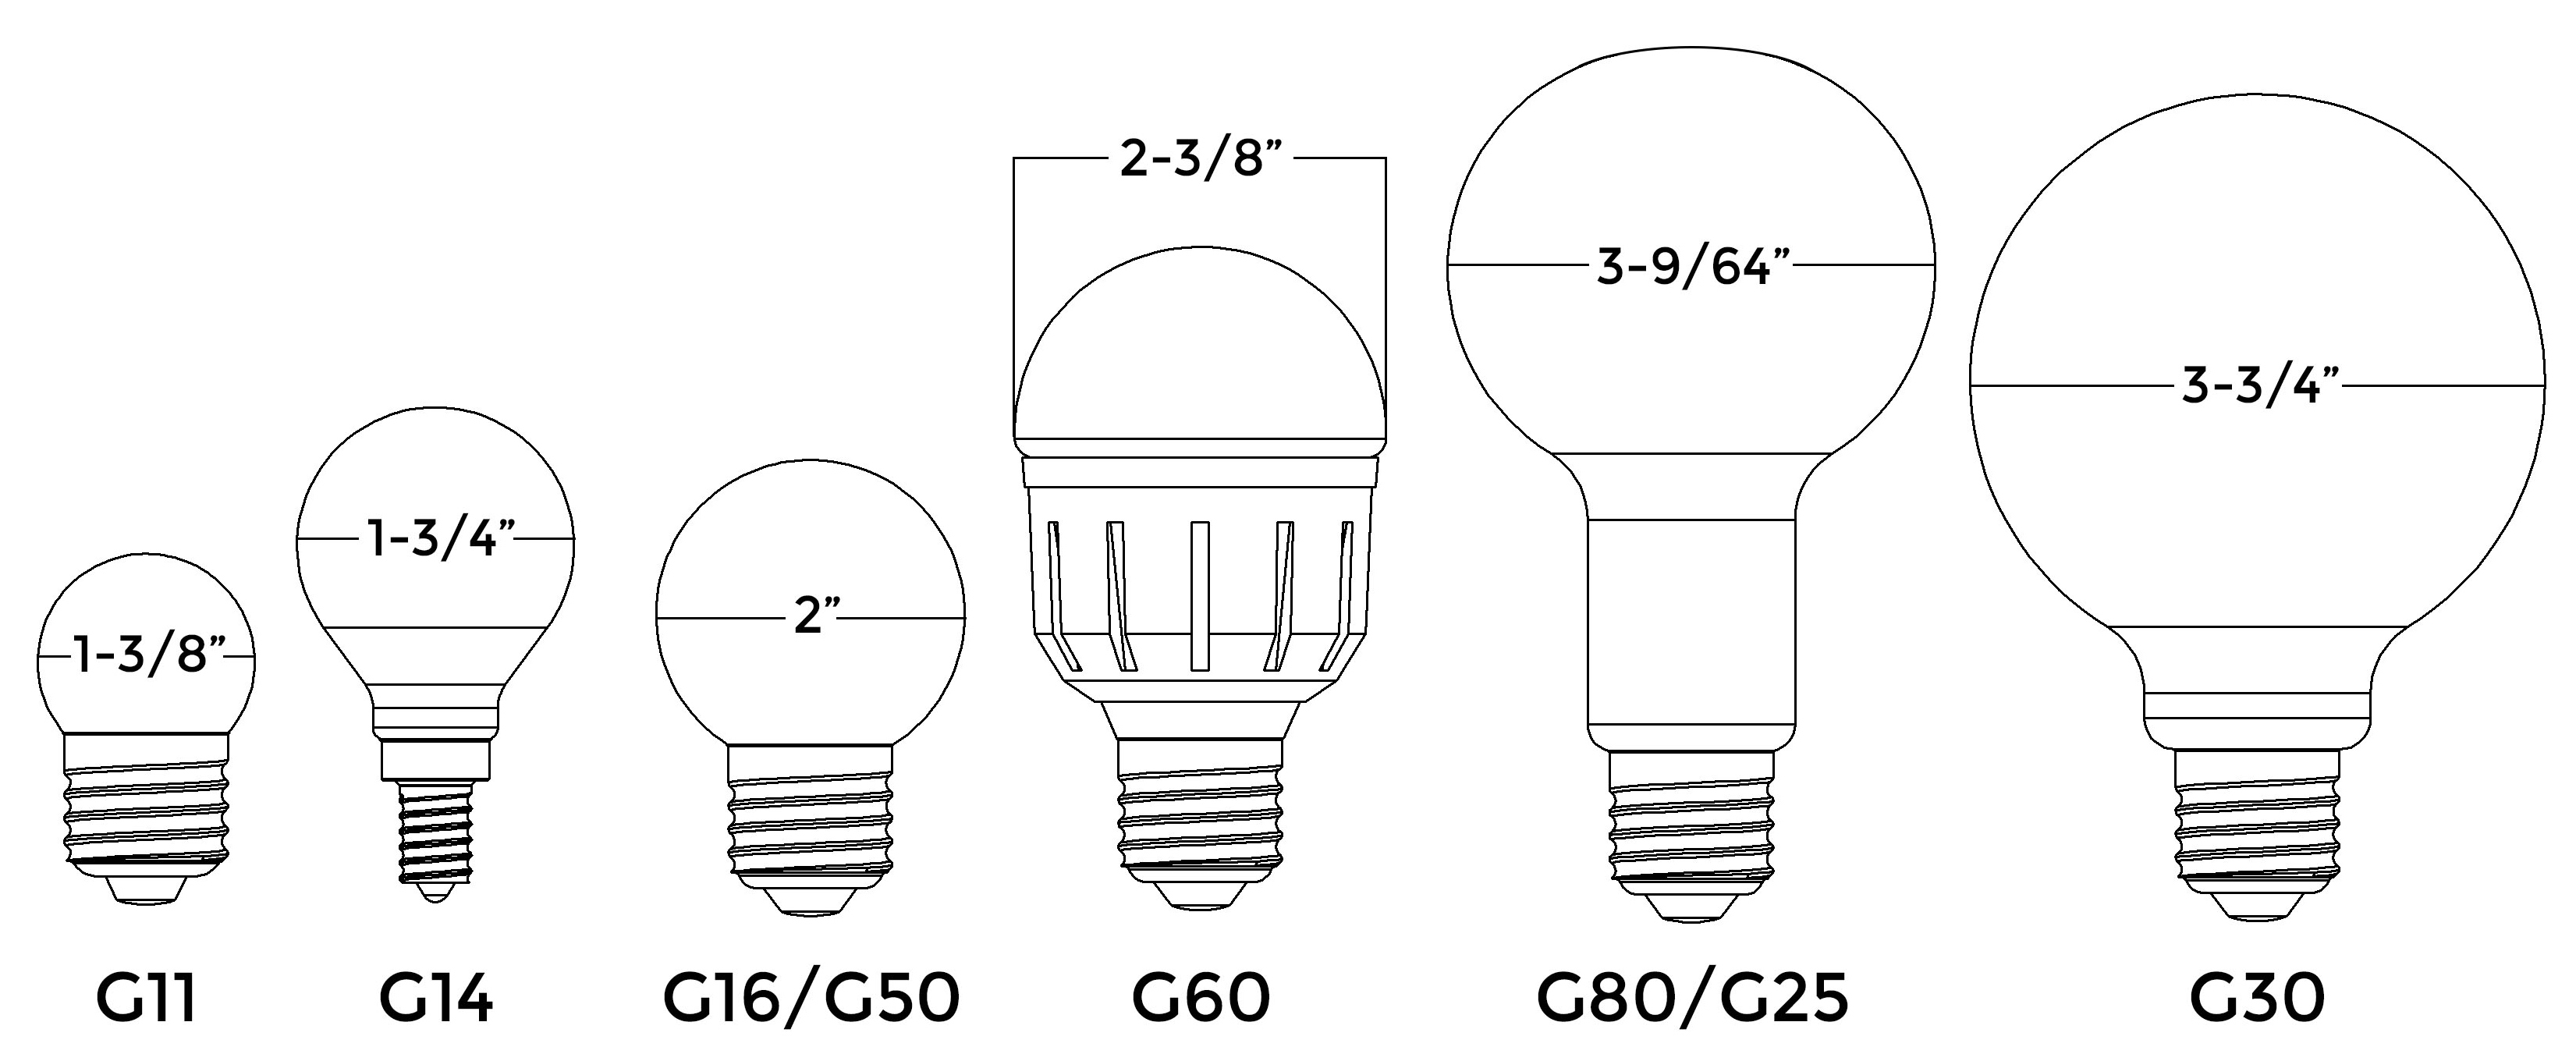 Home lighting 101 a guide to understanding light bulb shapes sizes g bulb drawings aloadofball Image collections